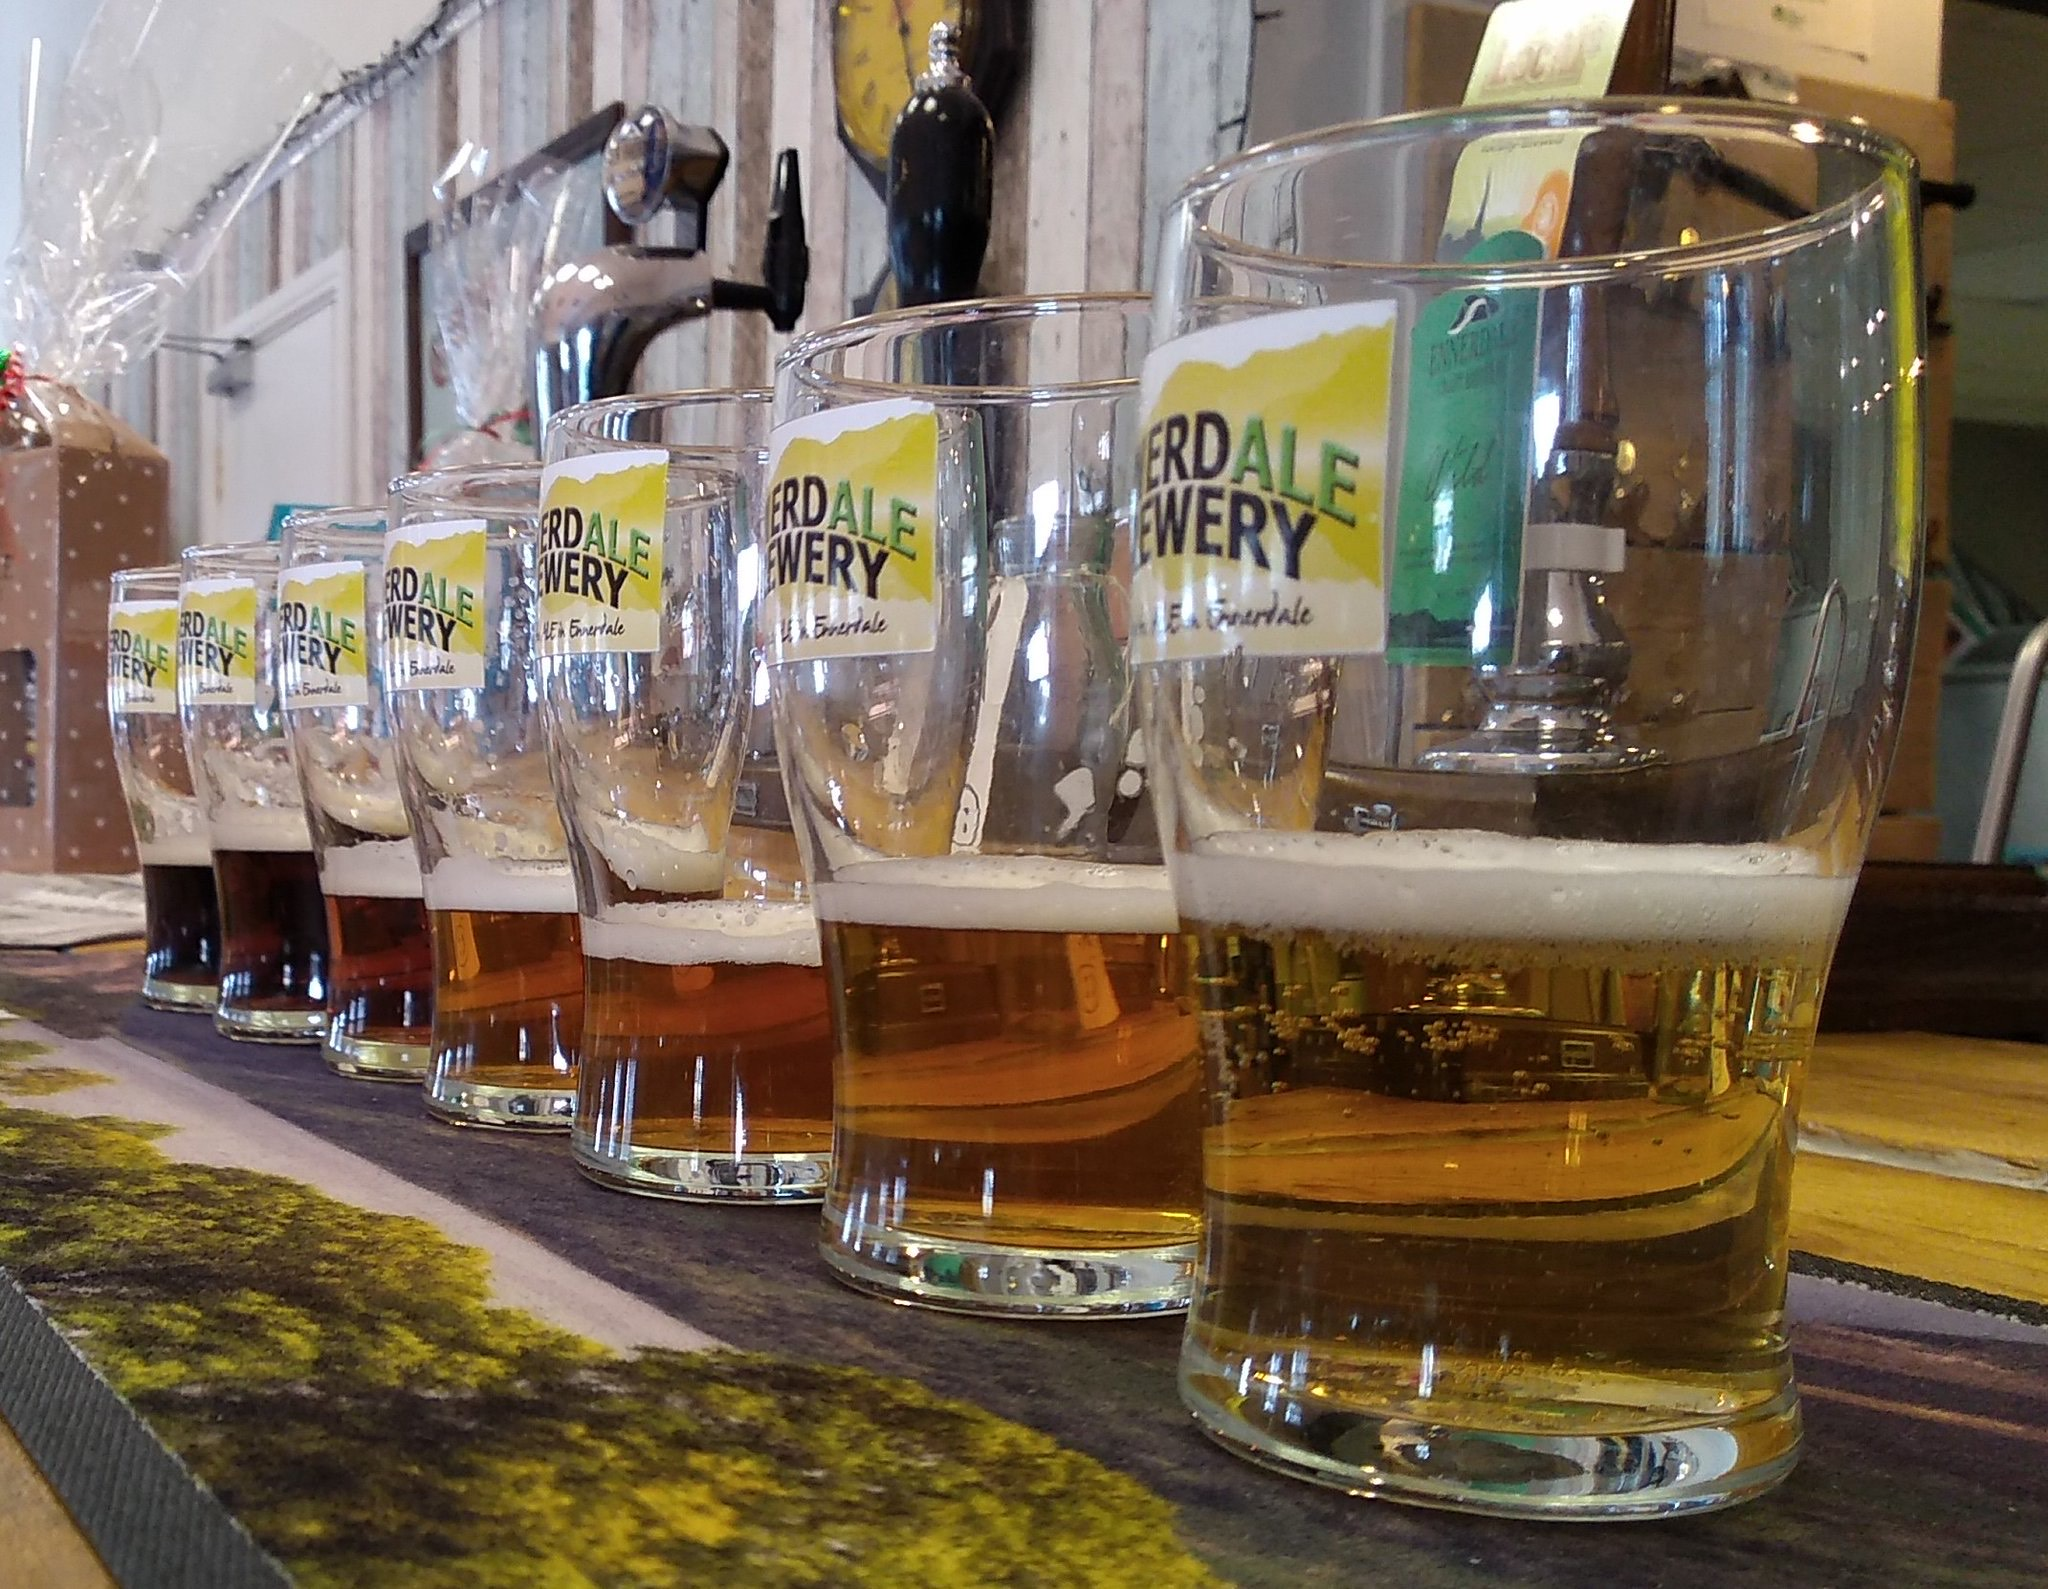 Beer at the taps